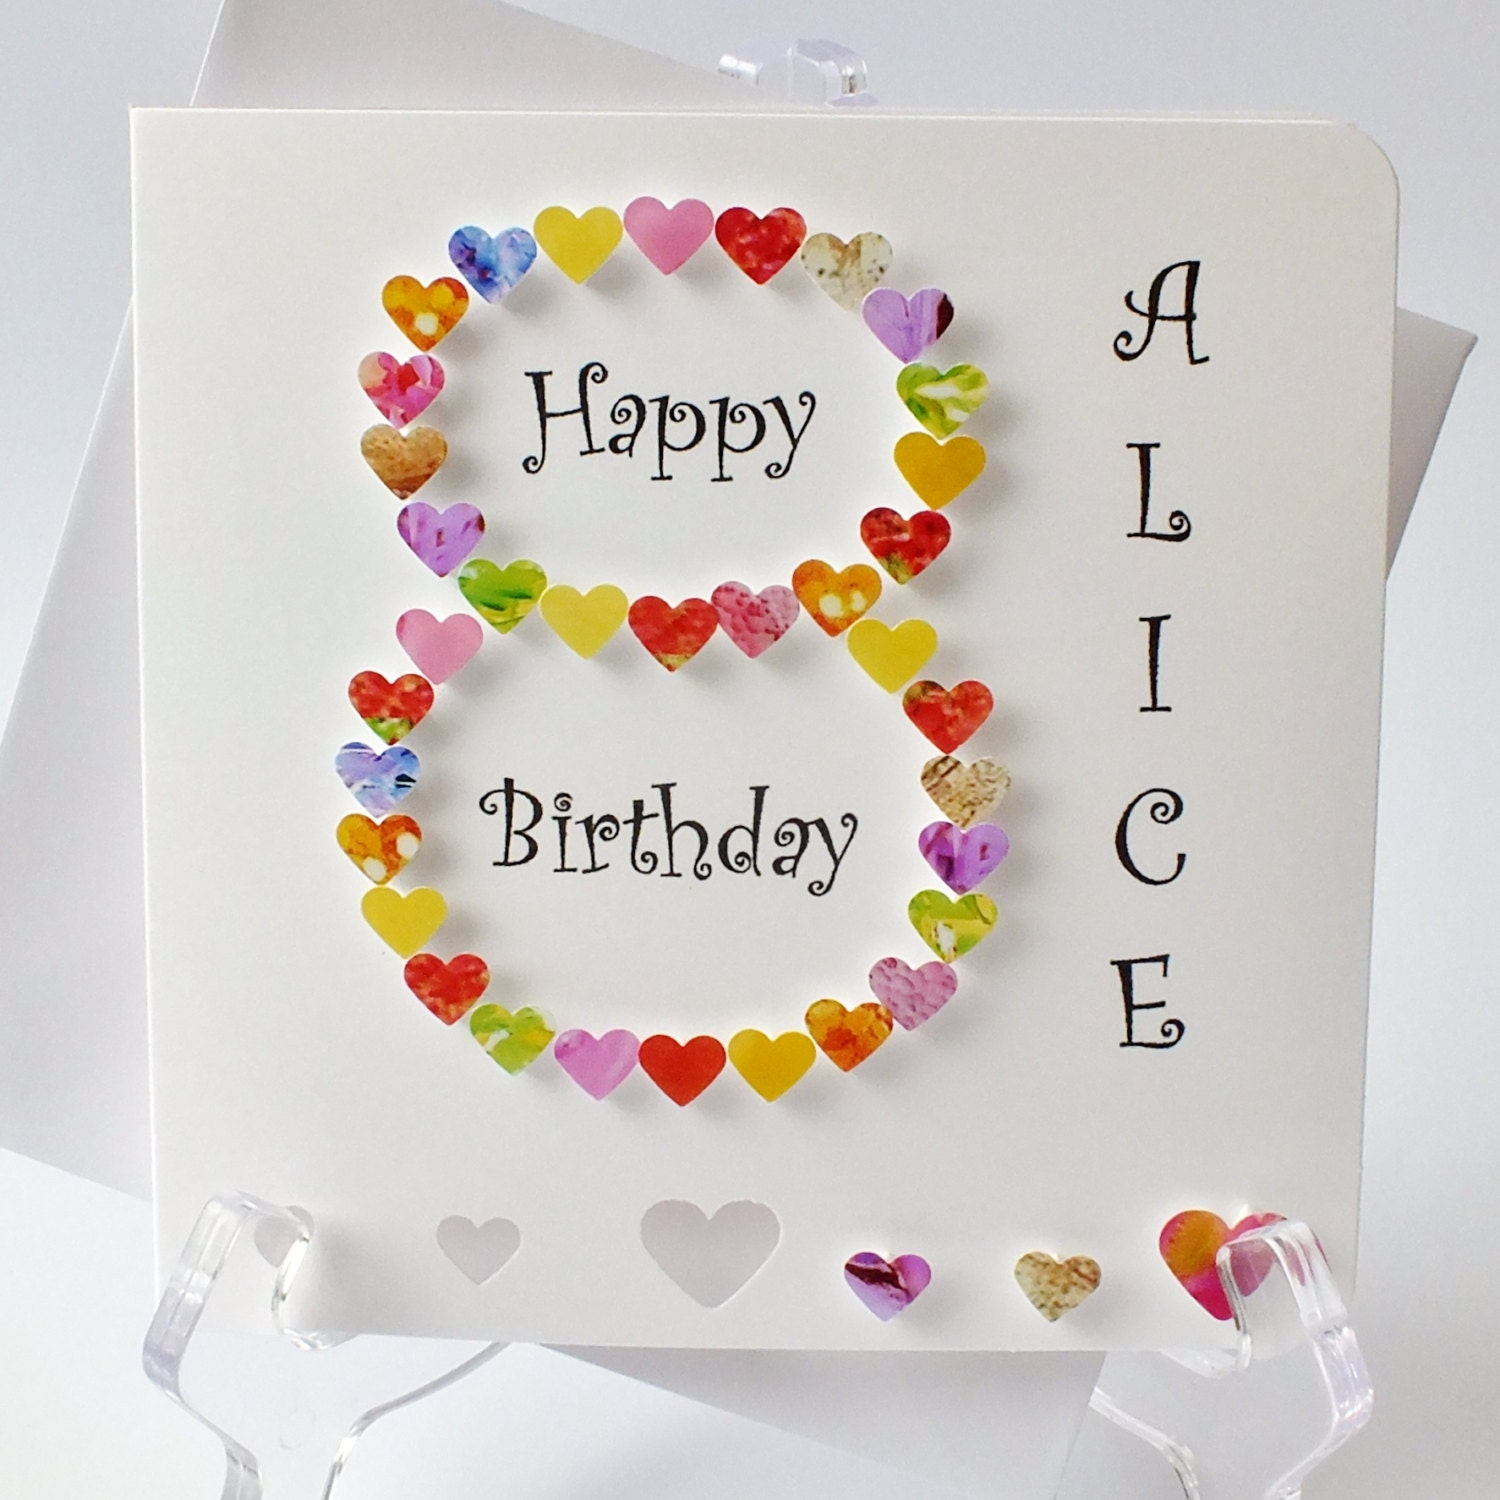 Handmade 3D 8 Card 8th Birthday Card Personalised